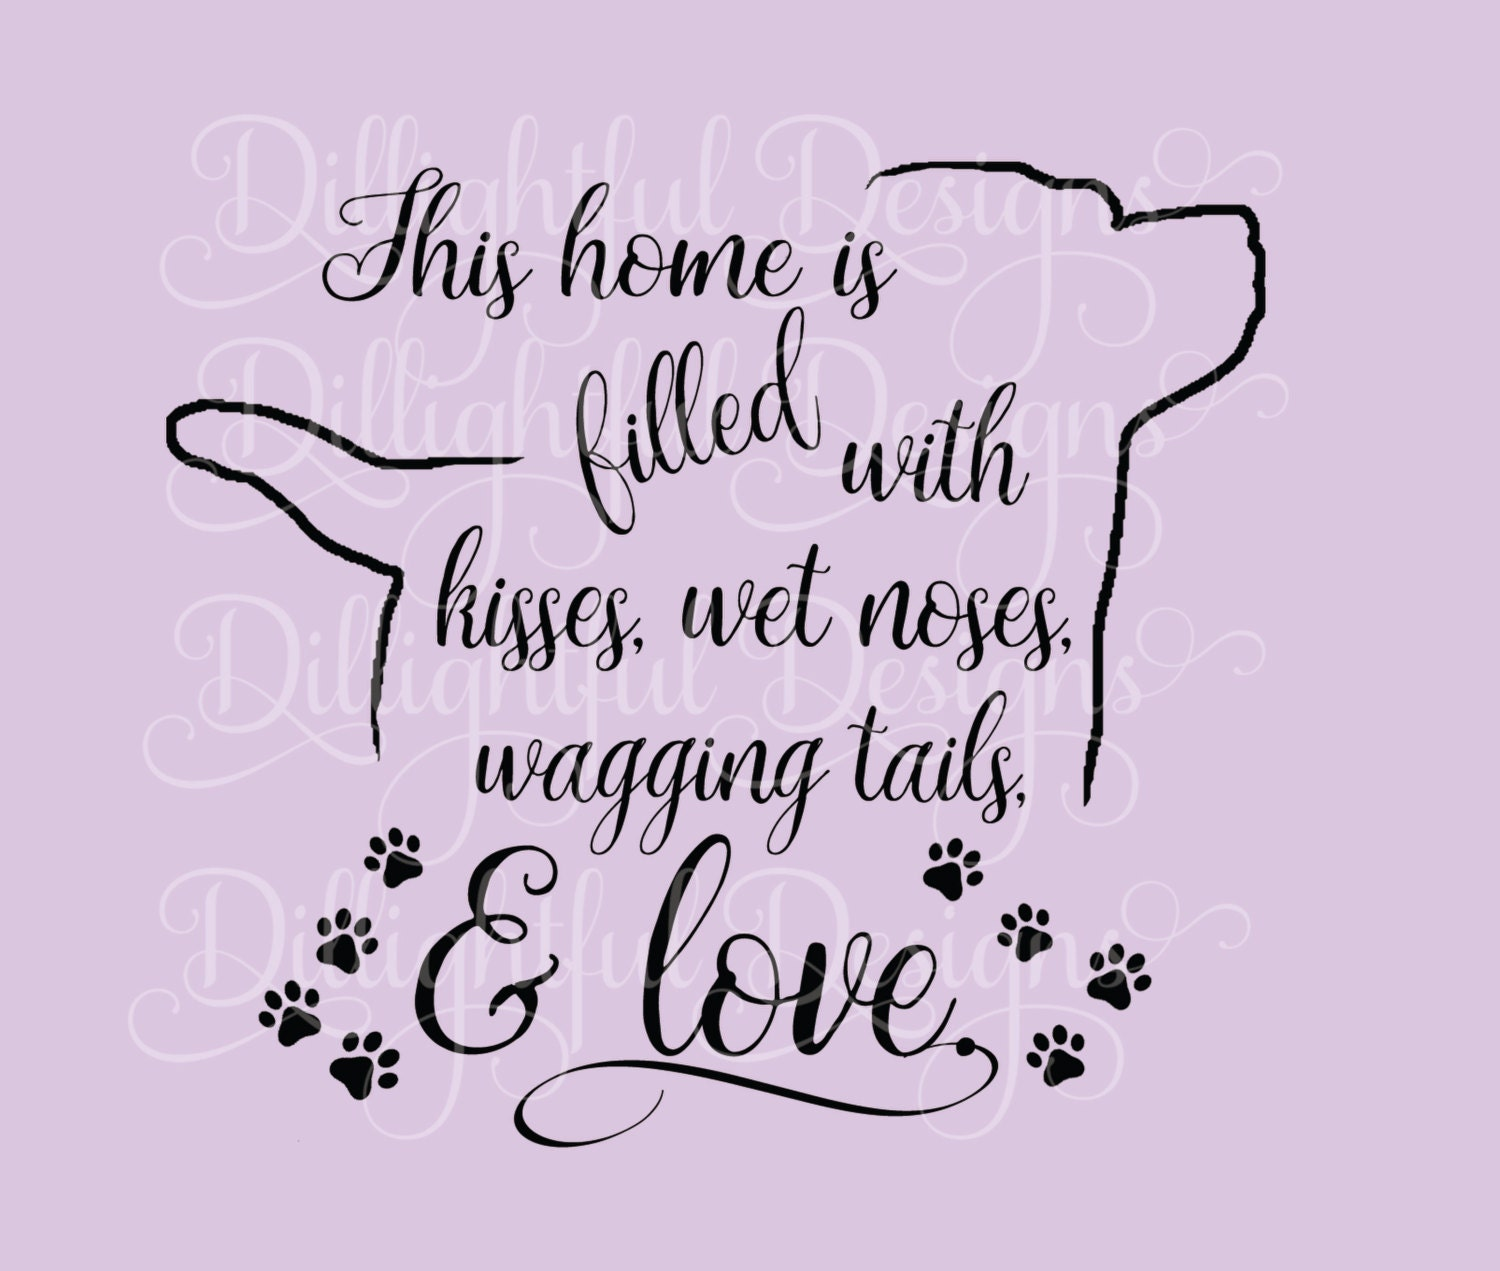 Special dog home wall decor gift saying svg love decal digital this is a digital file amipublicfo Images